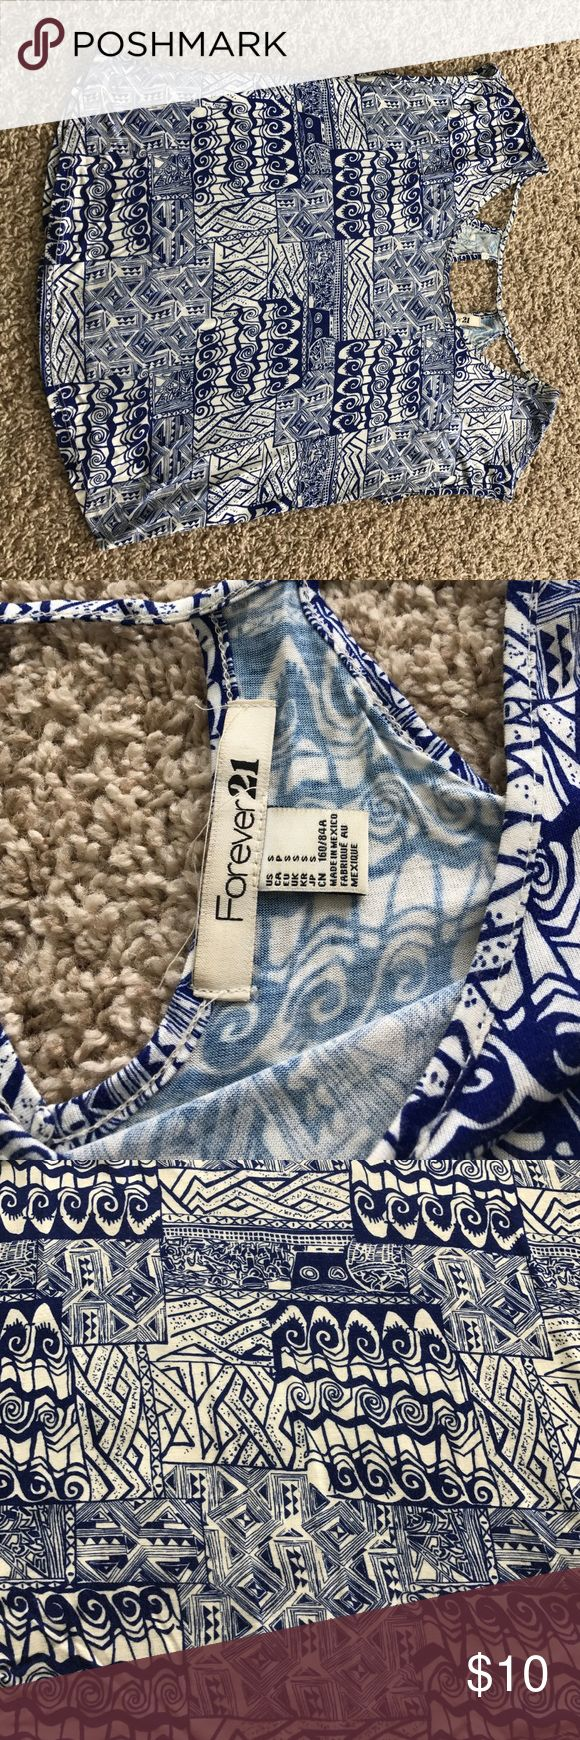 """Forever 21 blue and white printed top size S Forever 21 blue and white """"Aztec"""" printed top, size S, cut out details on back up top. Slight wear. Loose fit, little short Forever 21 Tops Tees - Short Sleeve"""